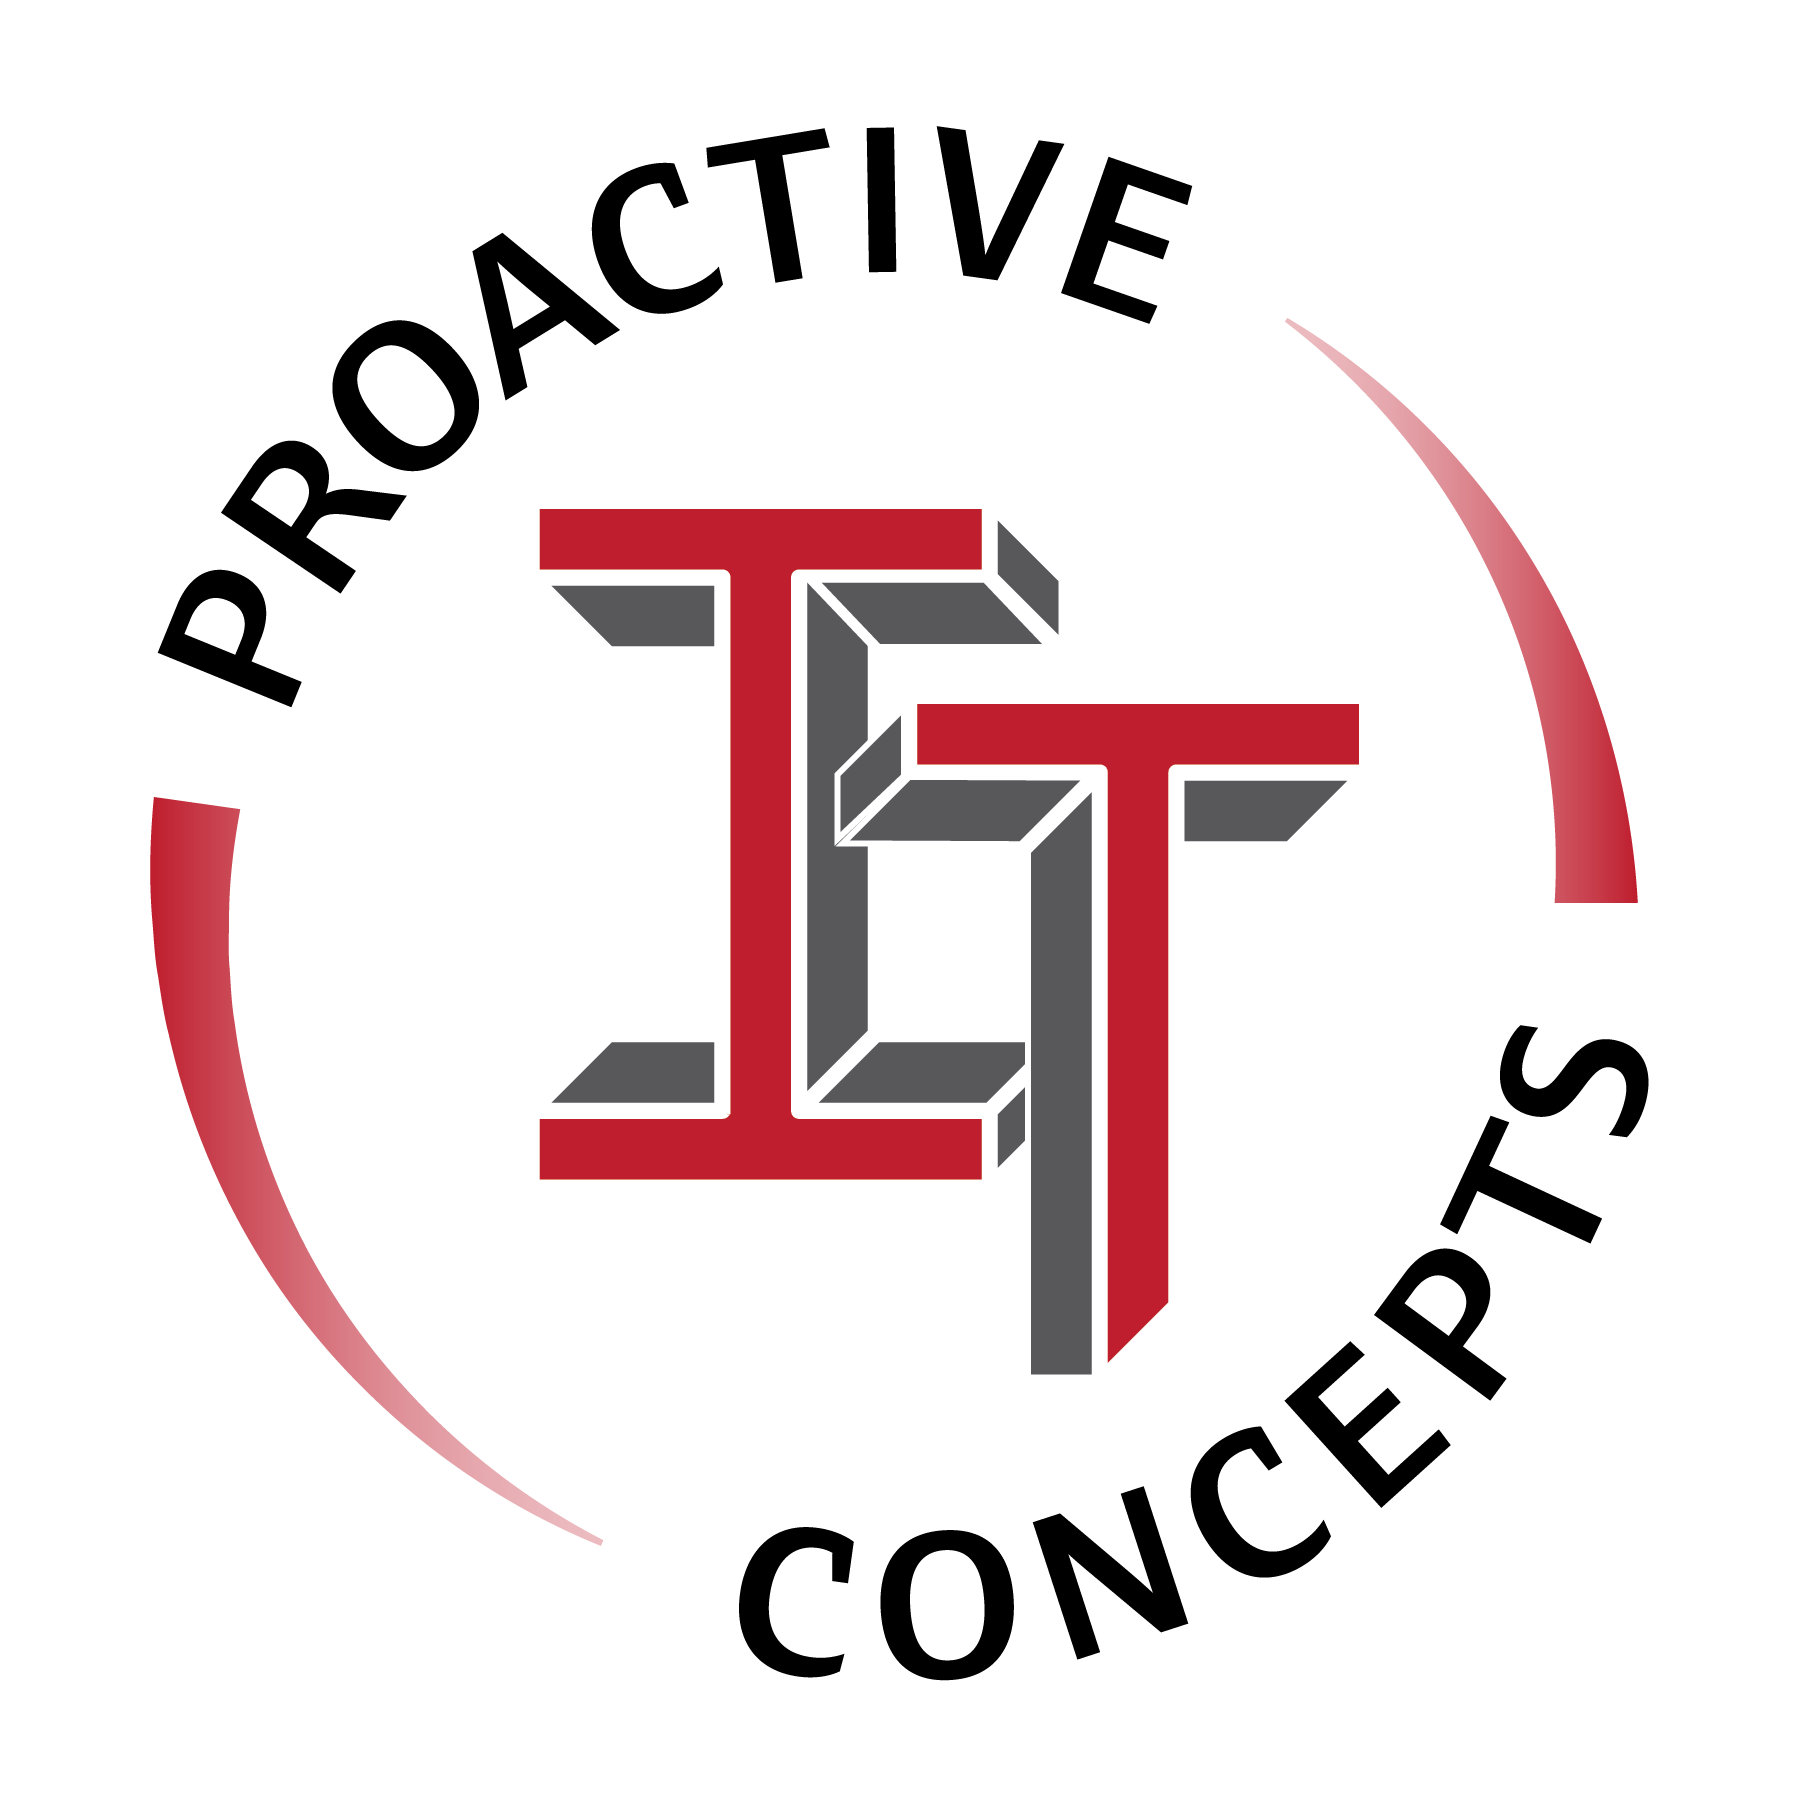 Proactive IT Concepts